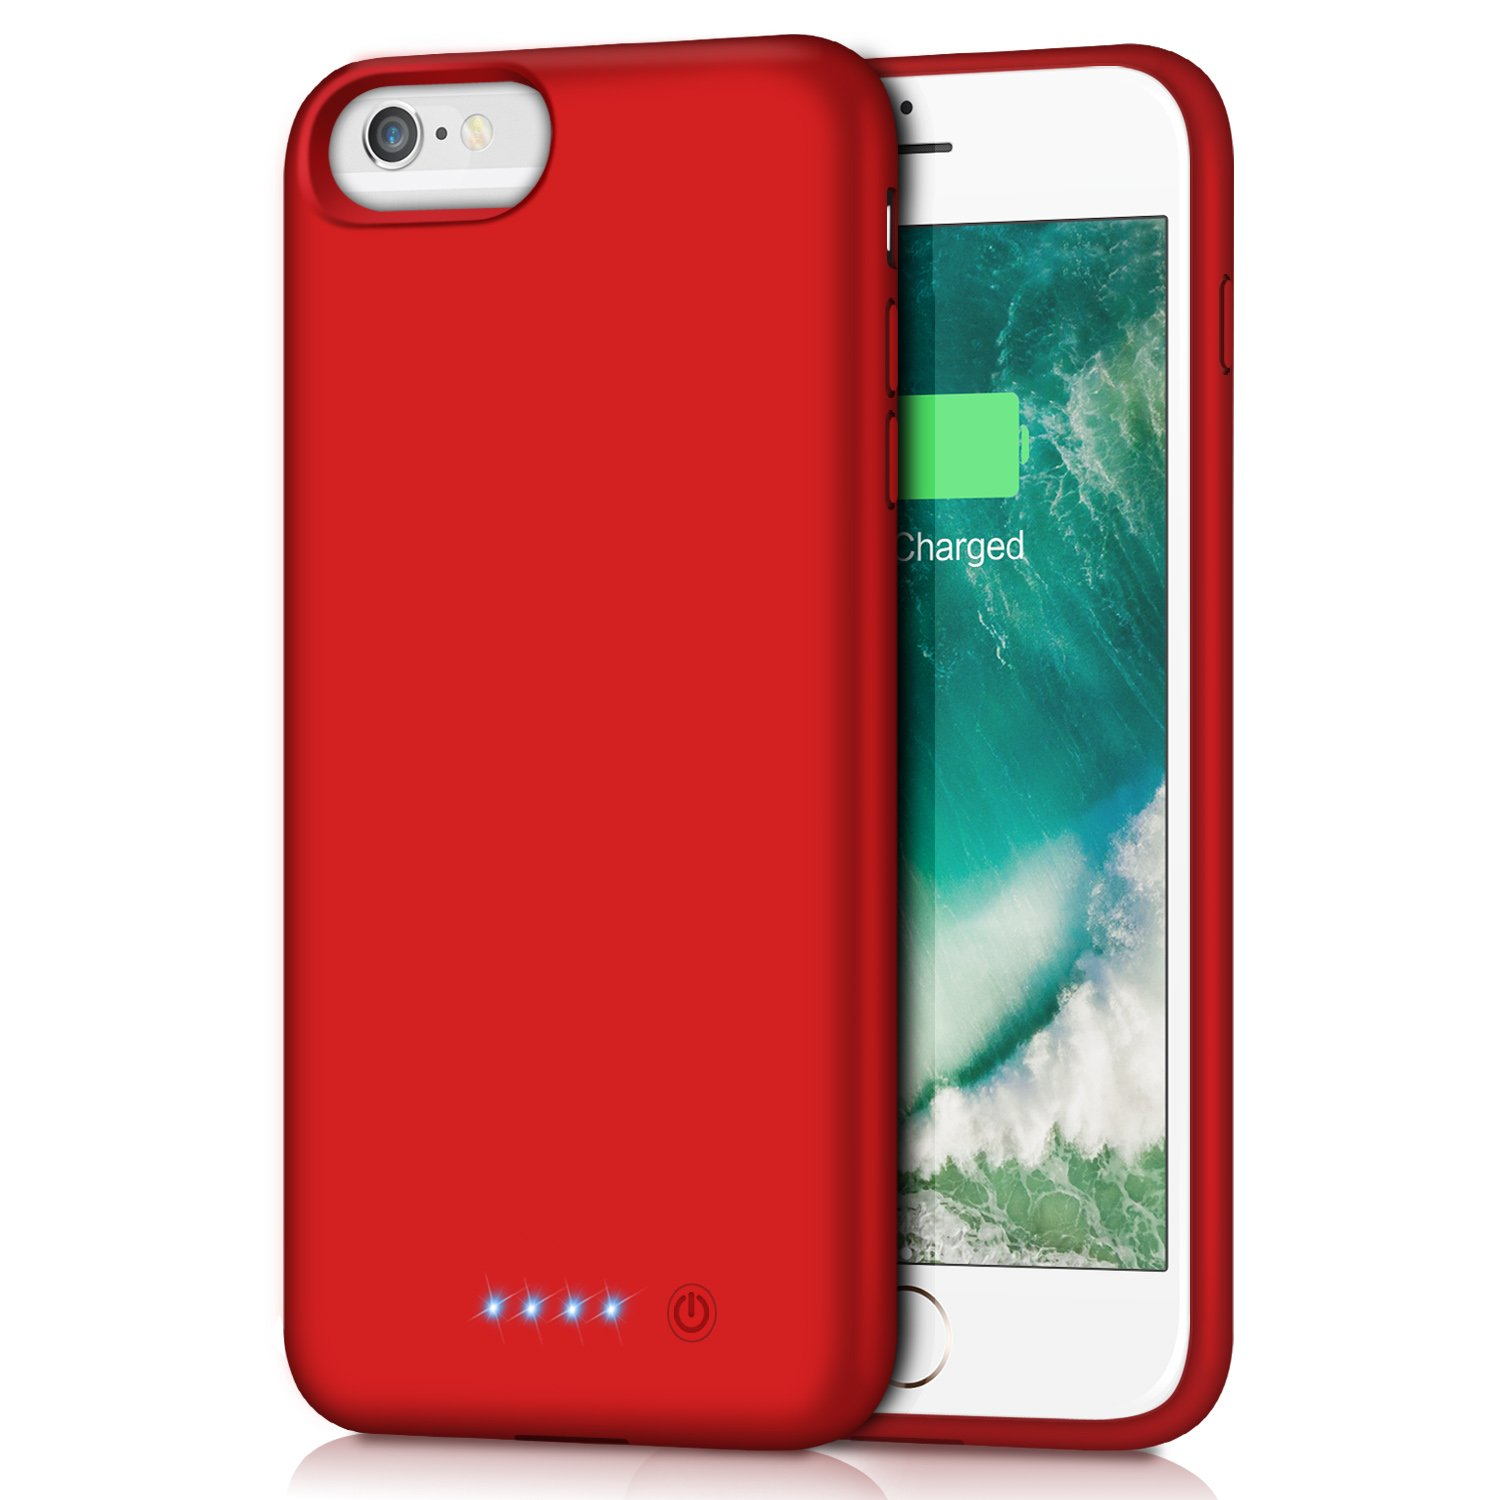 iPhone 6s Plus/6 Plus Battery Case,8500mAh Portable Rechargeable Charging Case External Battery Pack for iPhone 6Plus/6s Plus Protective Charger Case Apple Battery Power Bank (5.5 Inch) (Red)